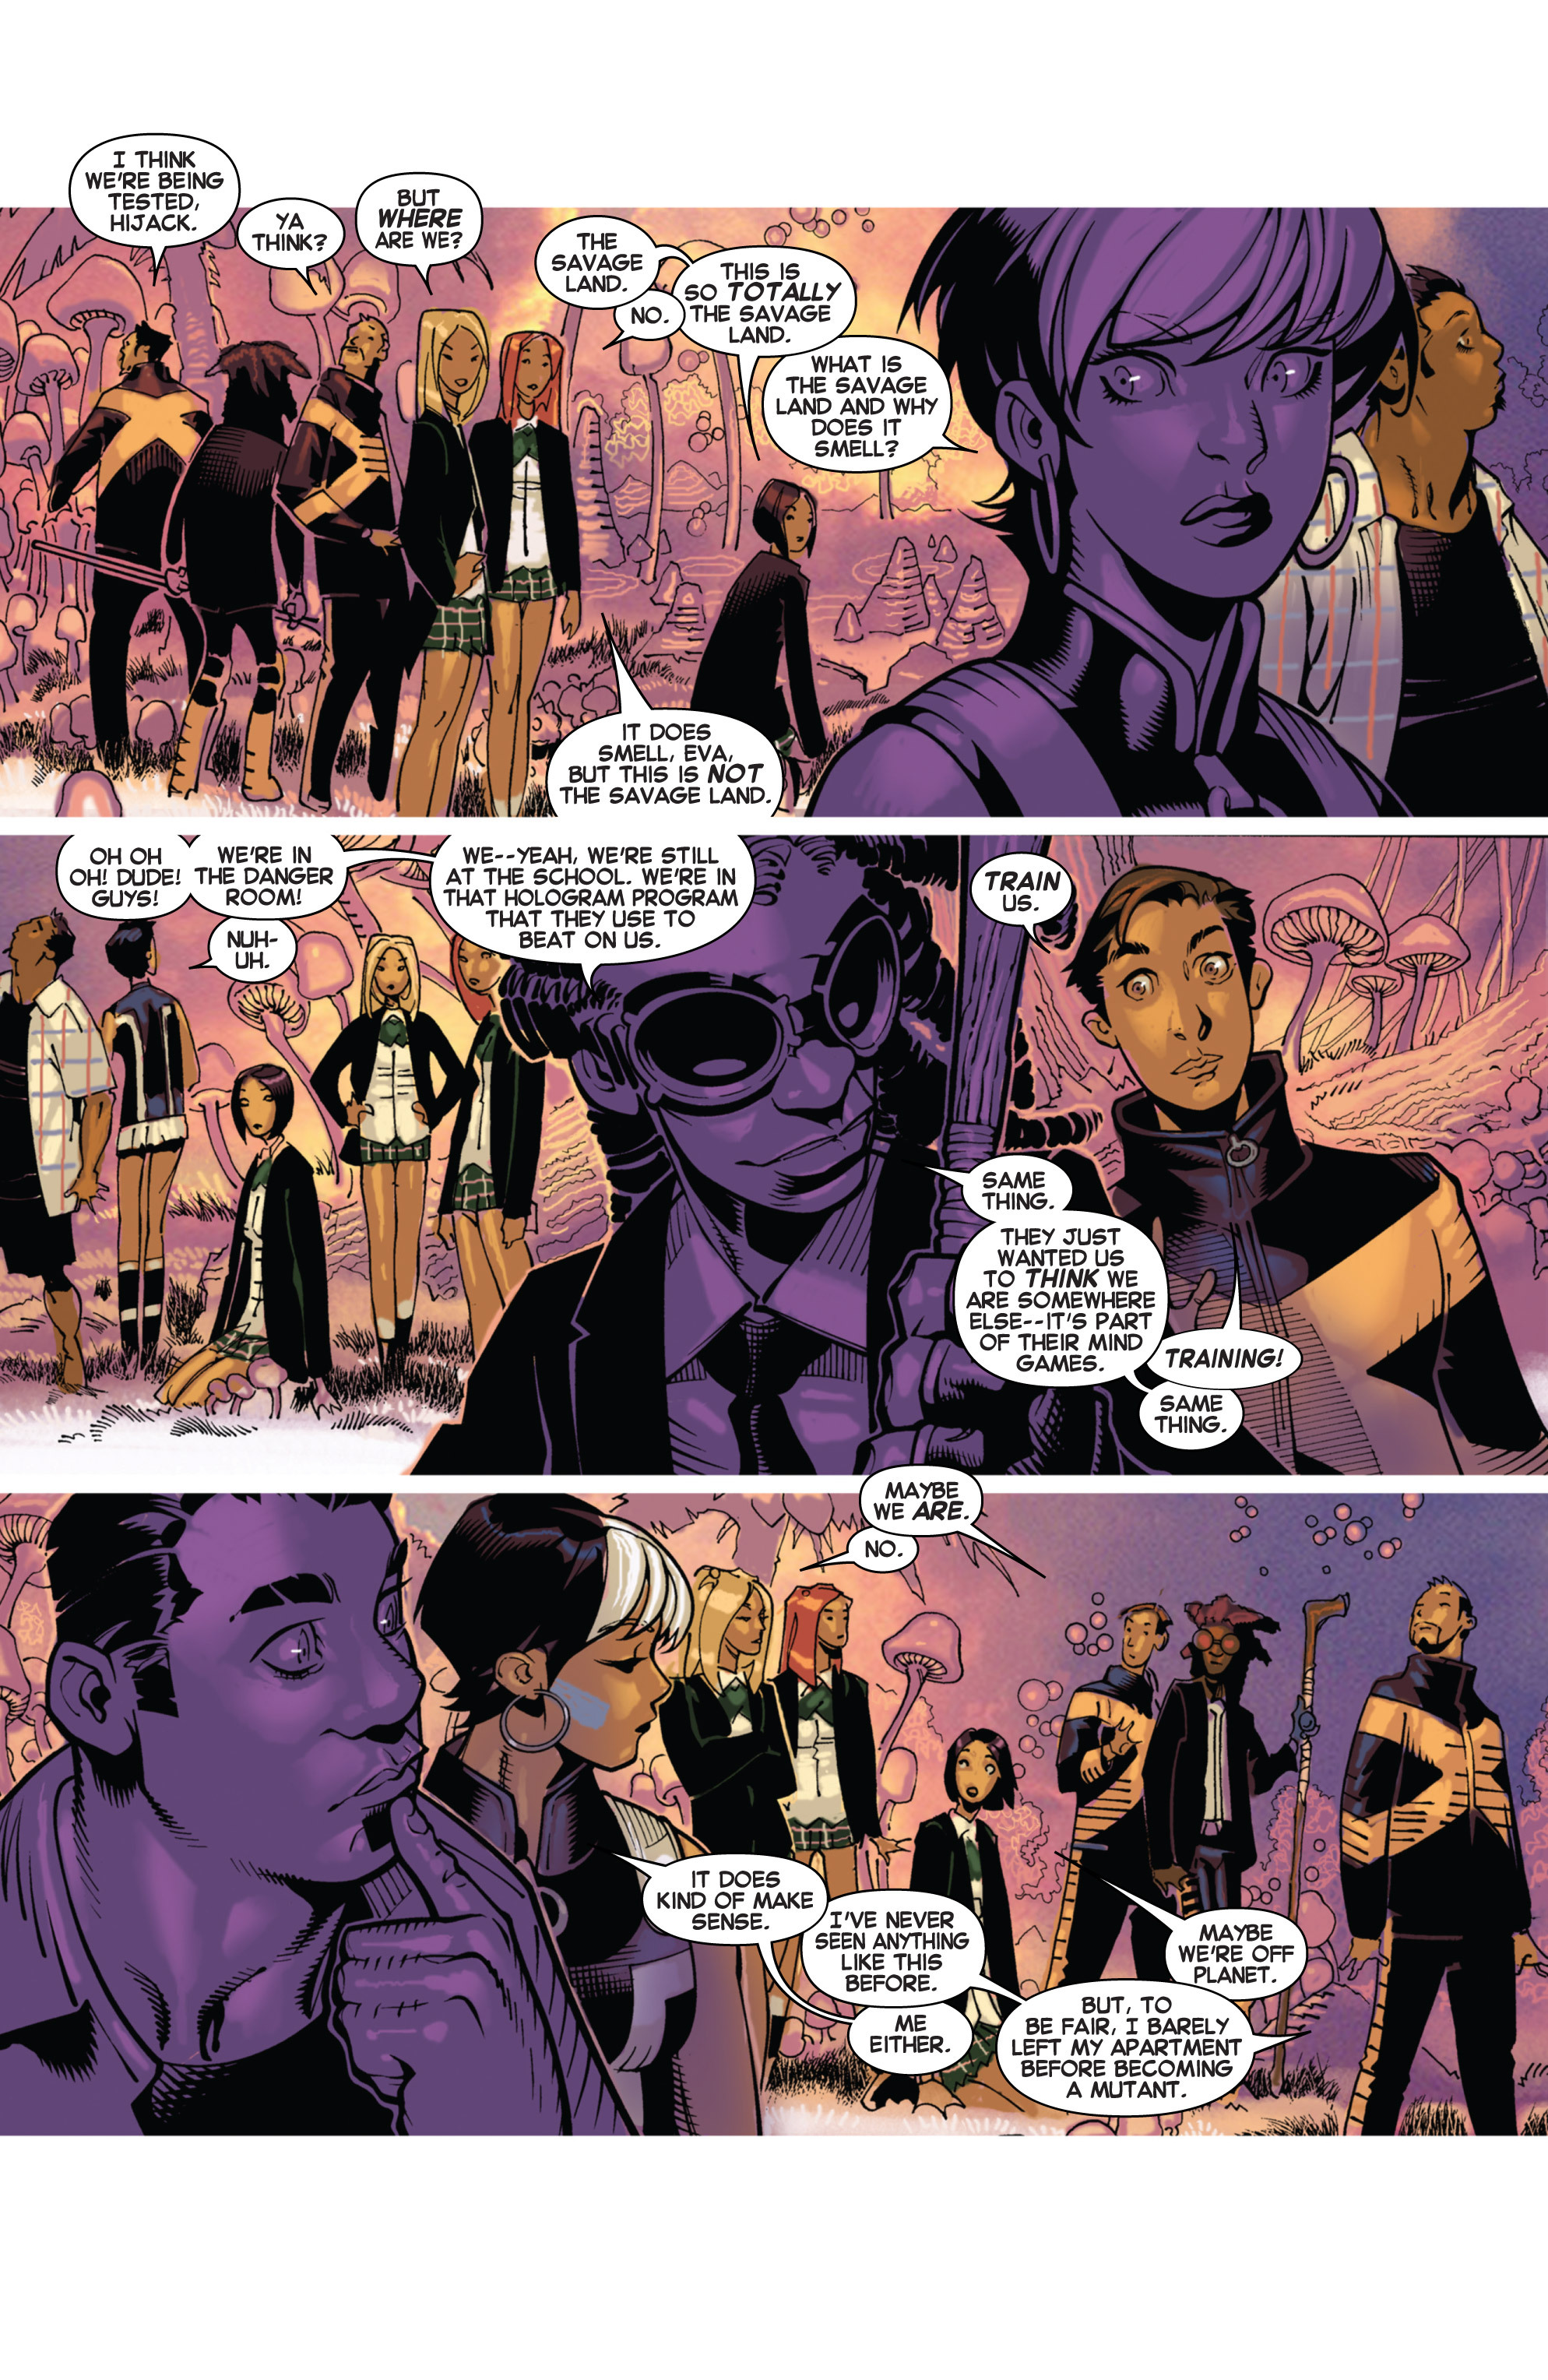 Read online Uncanny X-Men (2013) comic -  Issue # _TPB 3 - The Good, The Bad, The Inhuman - 68